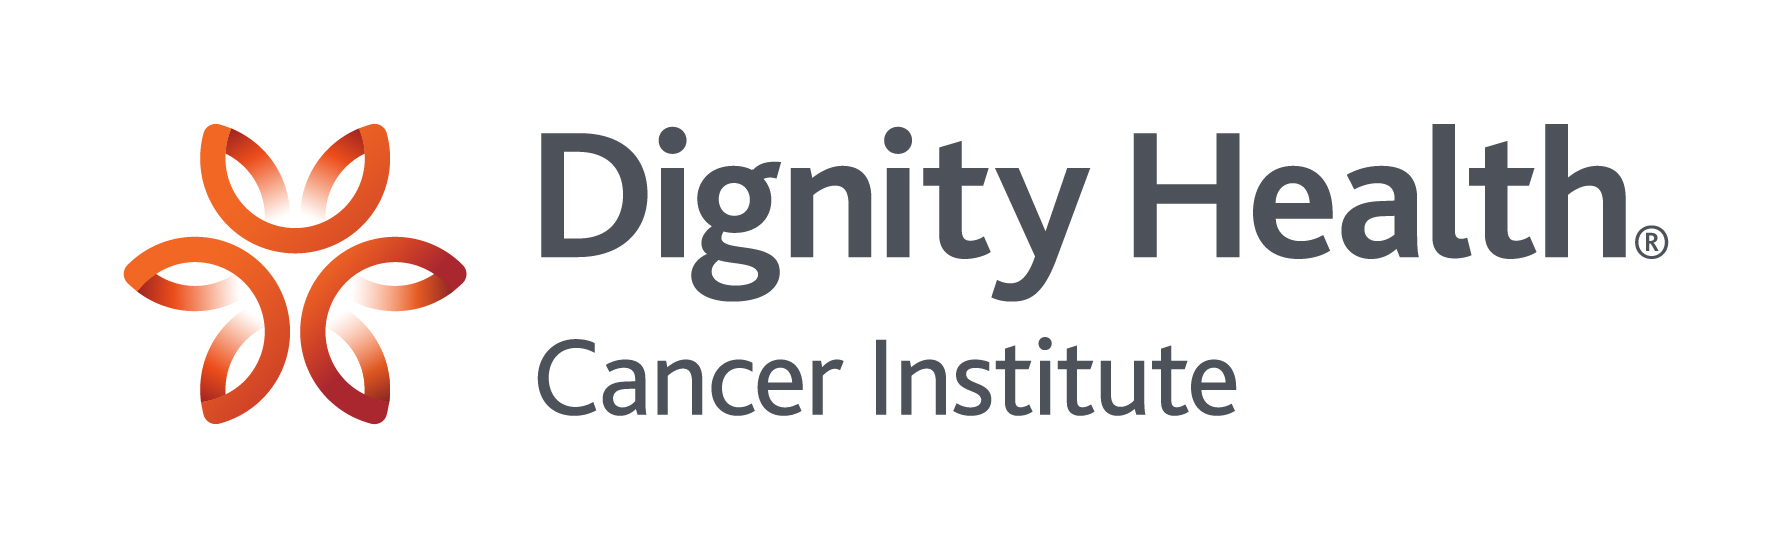 Section Leader, Gastroenterology Multidisciplinary Oncology - Phoenix, AZ - Dignity Health - Cancer Institute at St. Joseph's Hospital and Medical Center